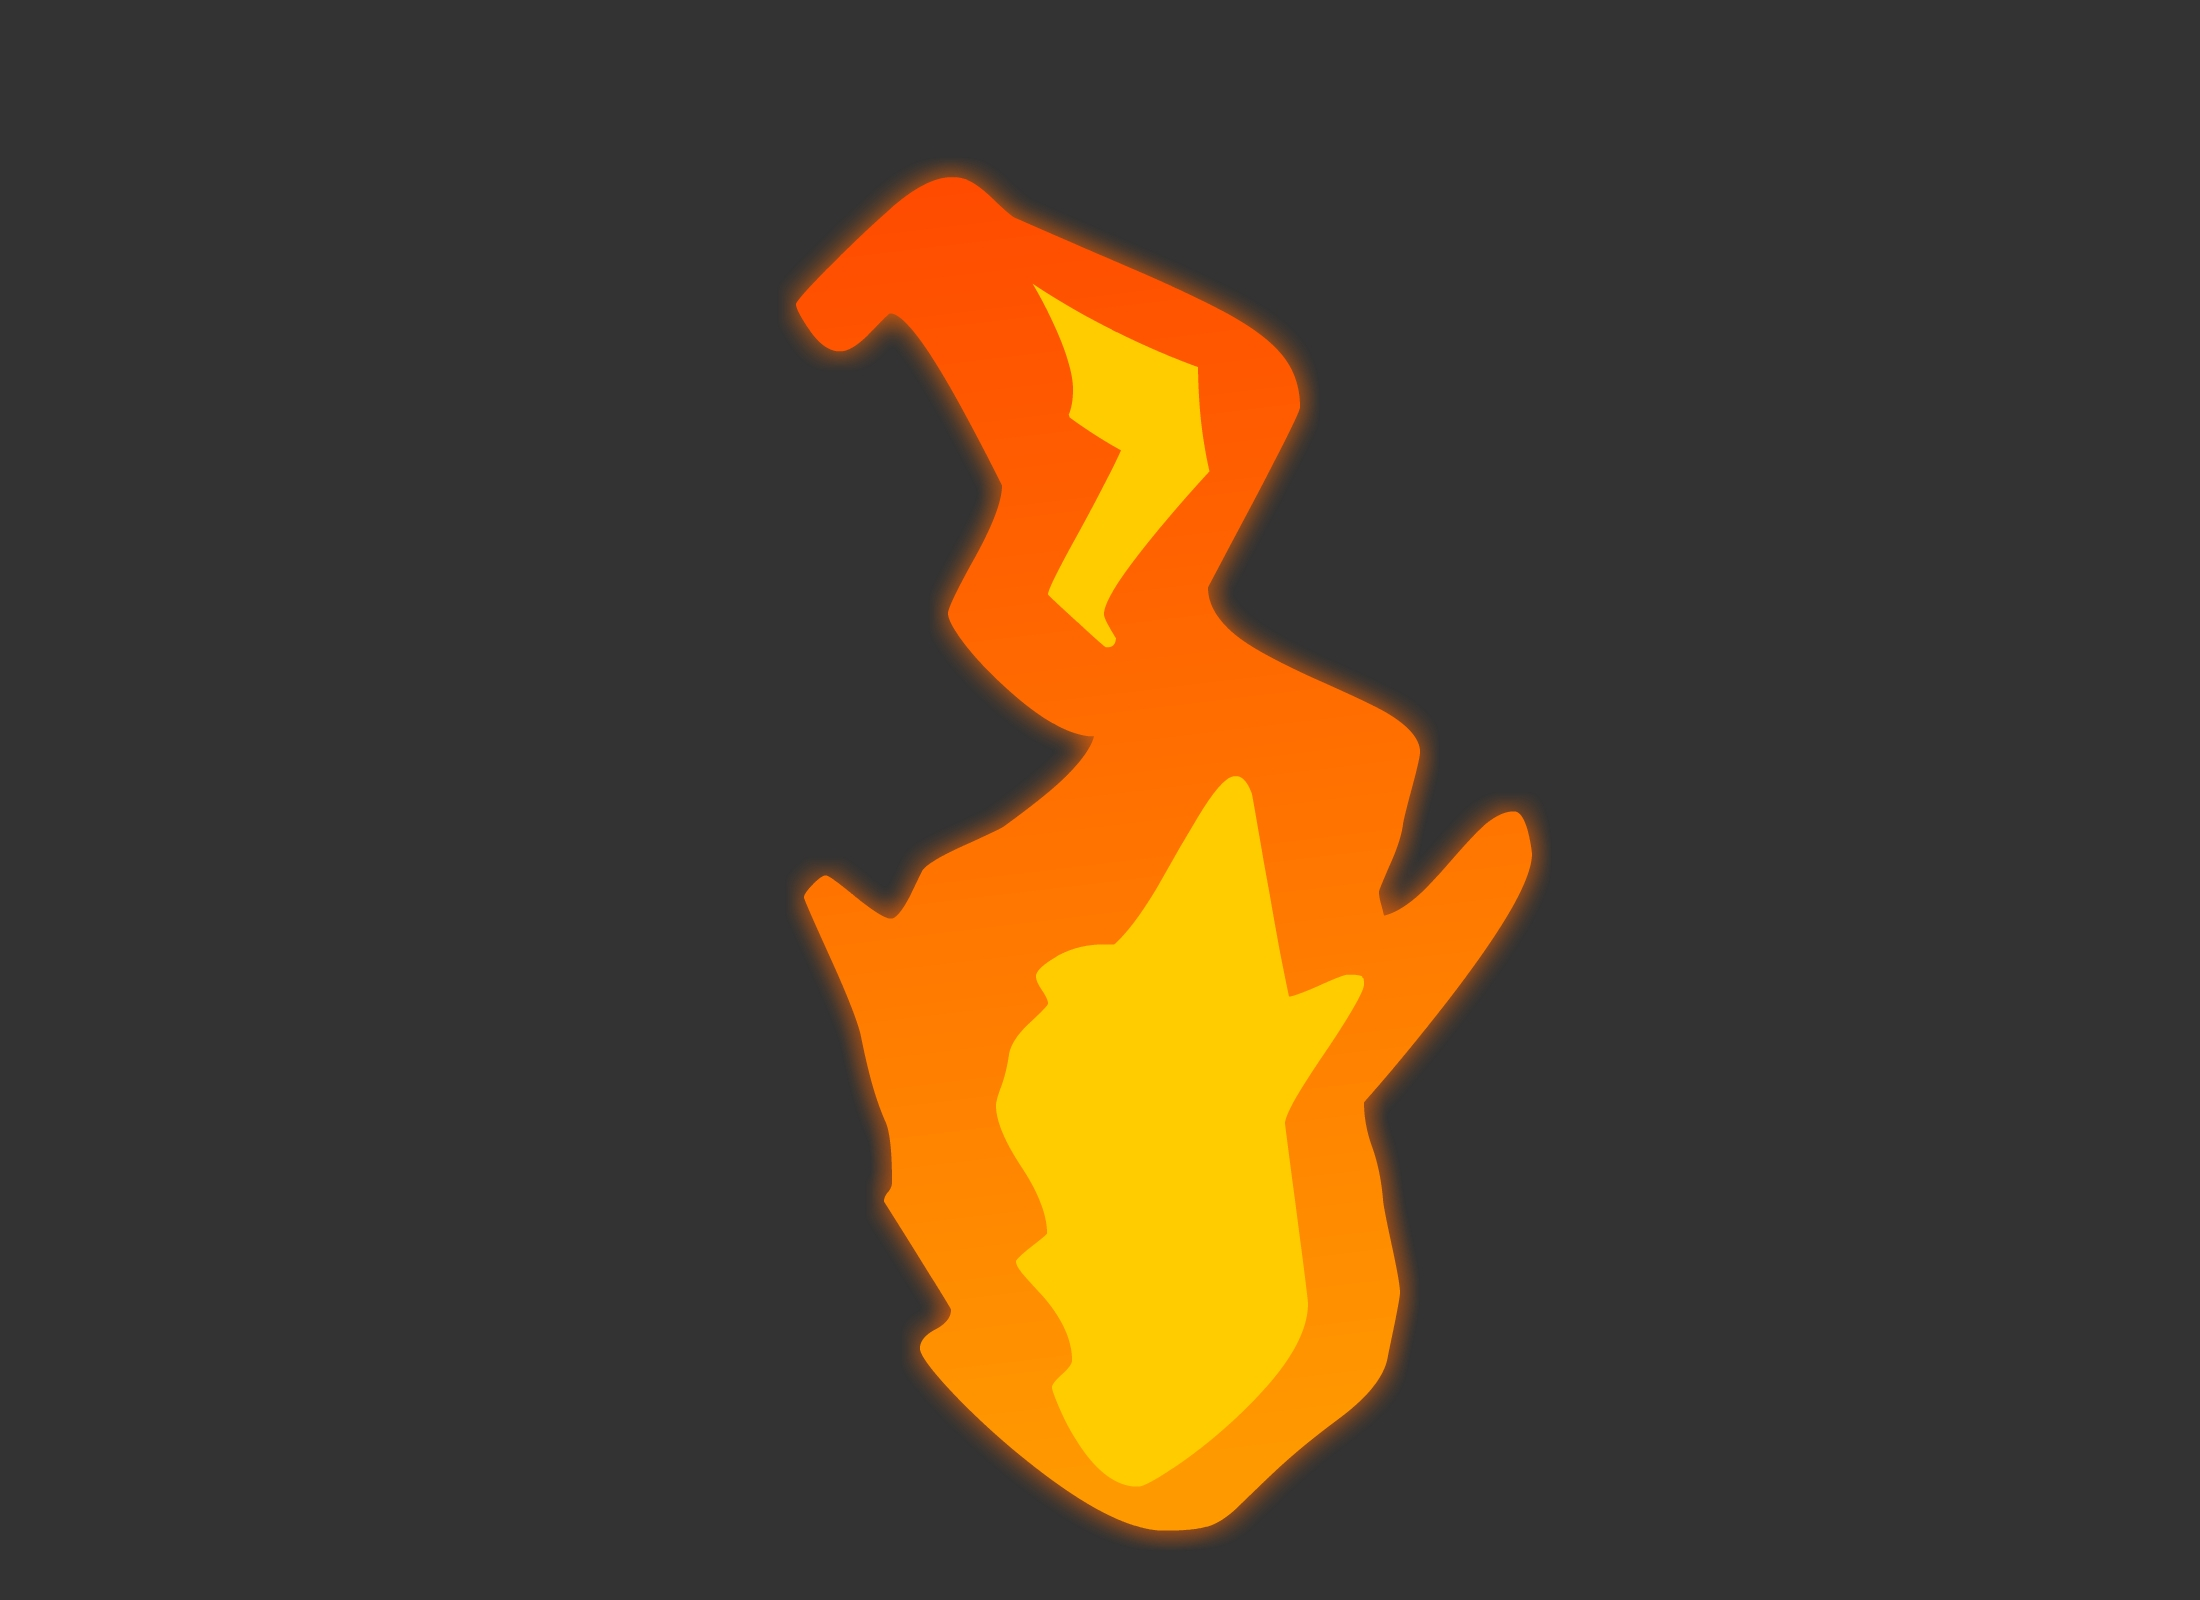 Flame Game Fx Animation Illustrations On Creative Market